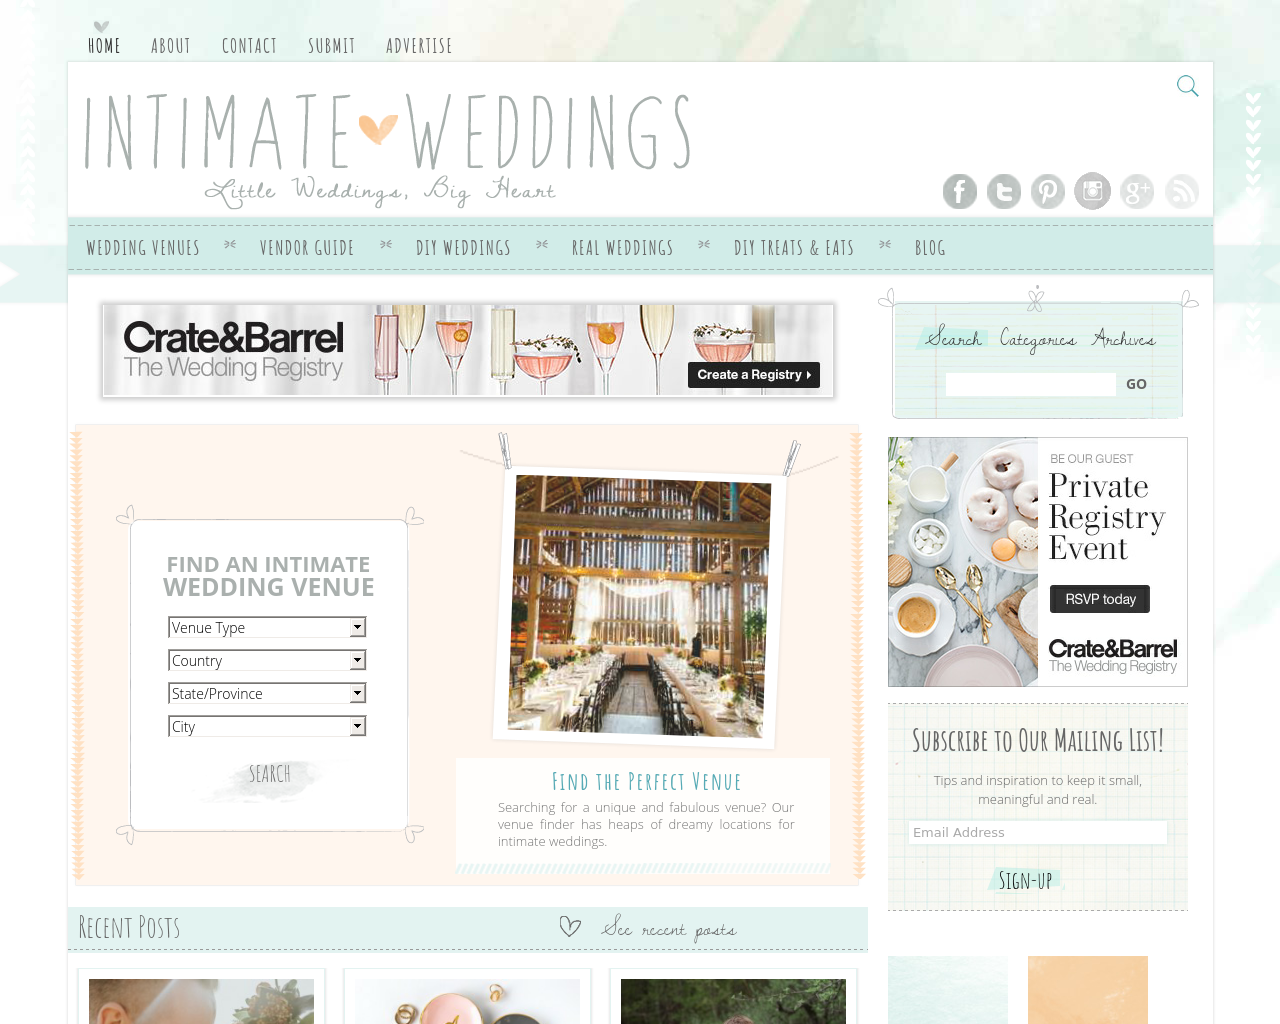 Intimate-Weddings-Advertising-Reviews-Pricing